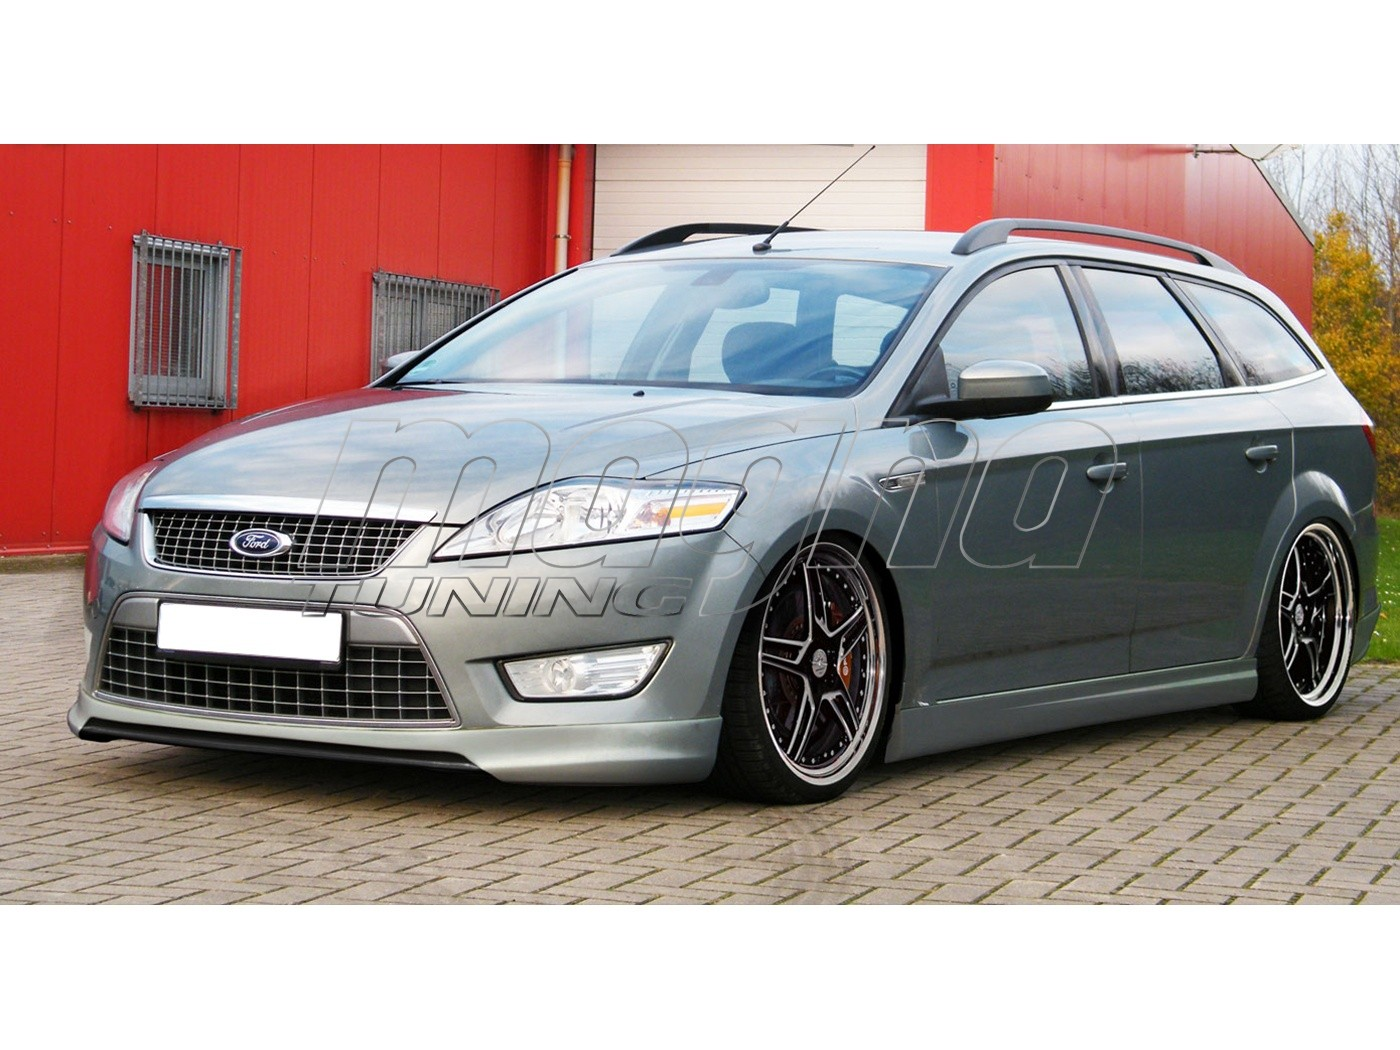 ford mondeo mk4 intenso front bumper extension. Black Bedroom Furniture Sets. Home Design Ideas